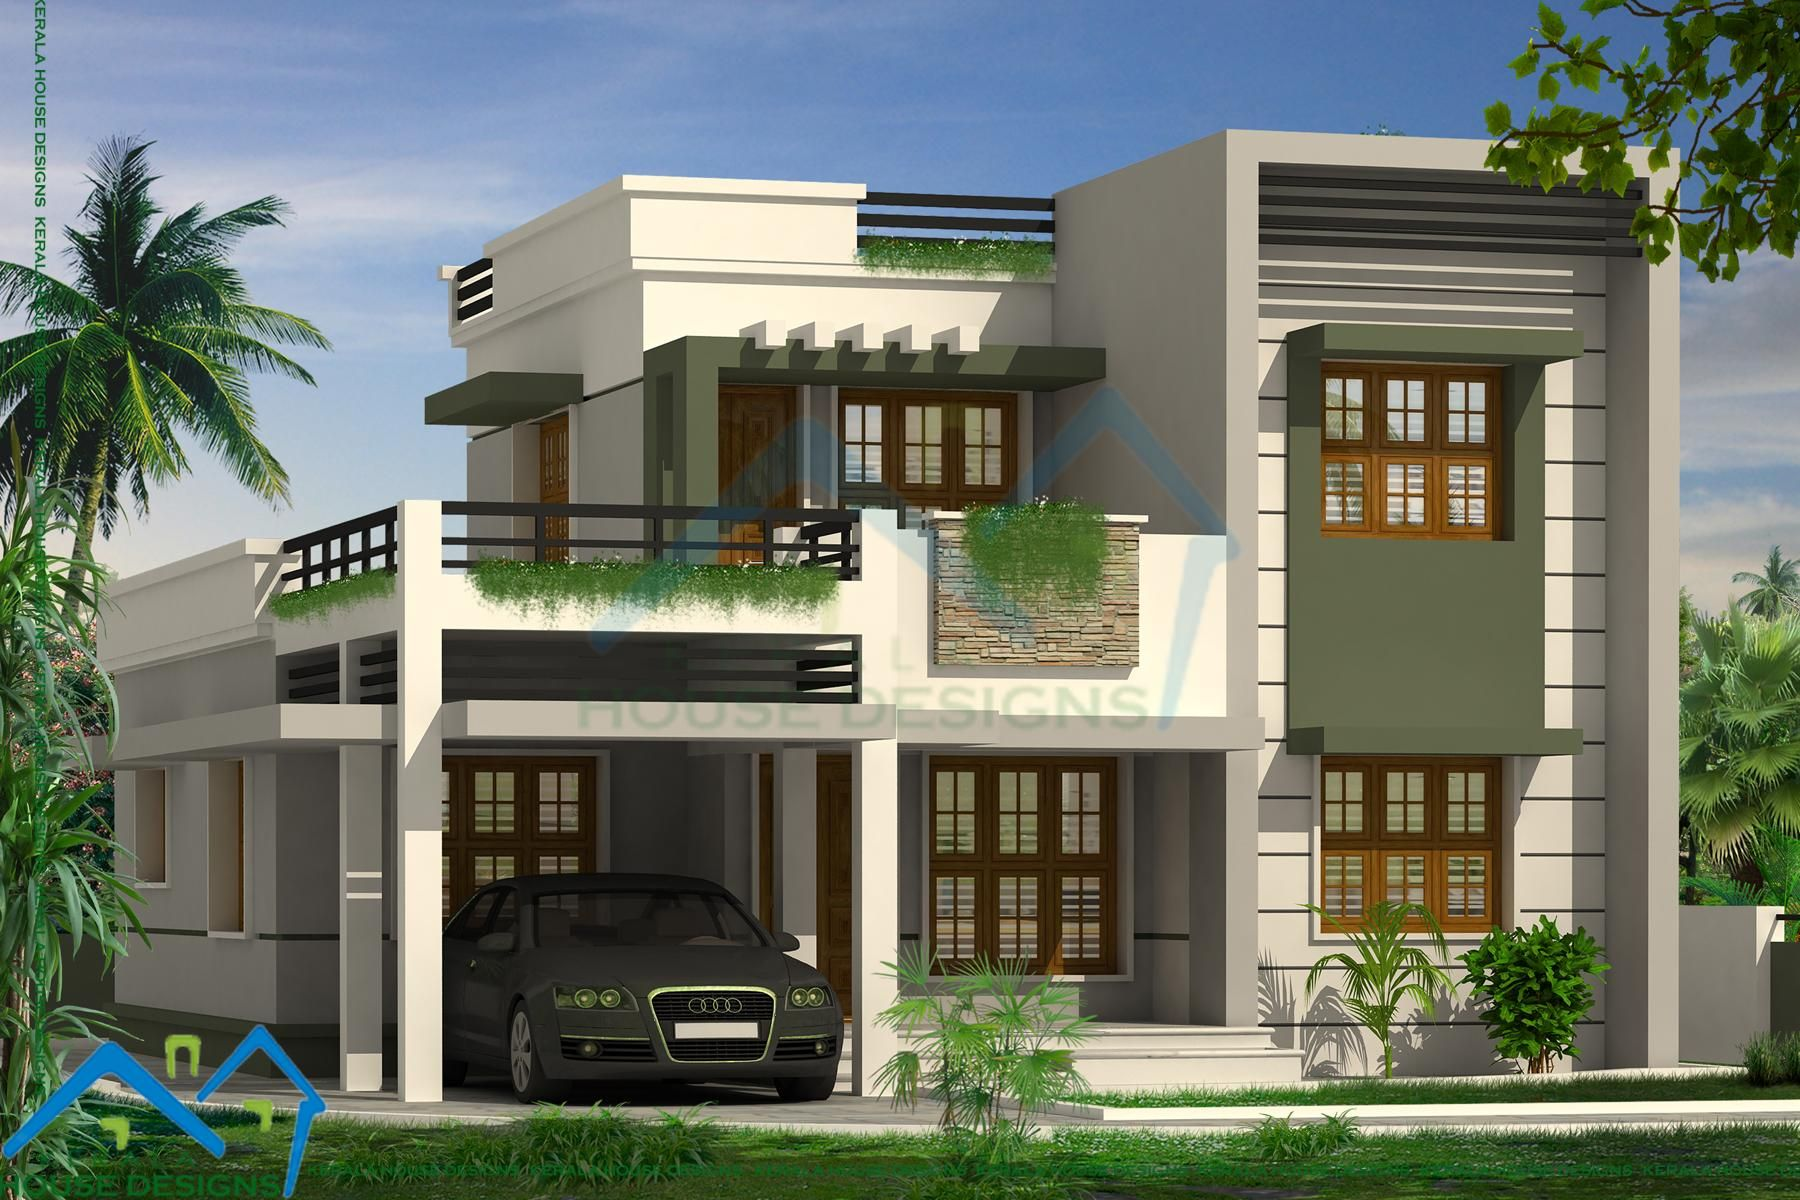 3 Bedroom Home For 5 Lakhs In Kerala Low Budget Free Kerala House Plans How To Build 3 Bedroom Philippines House Design Bungalow House Design Bungalow Design